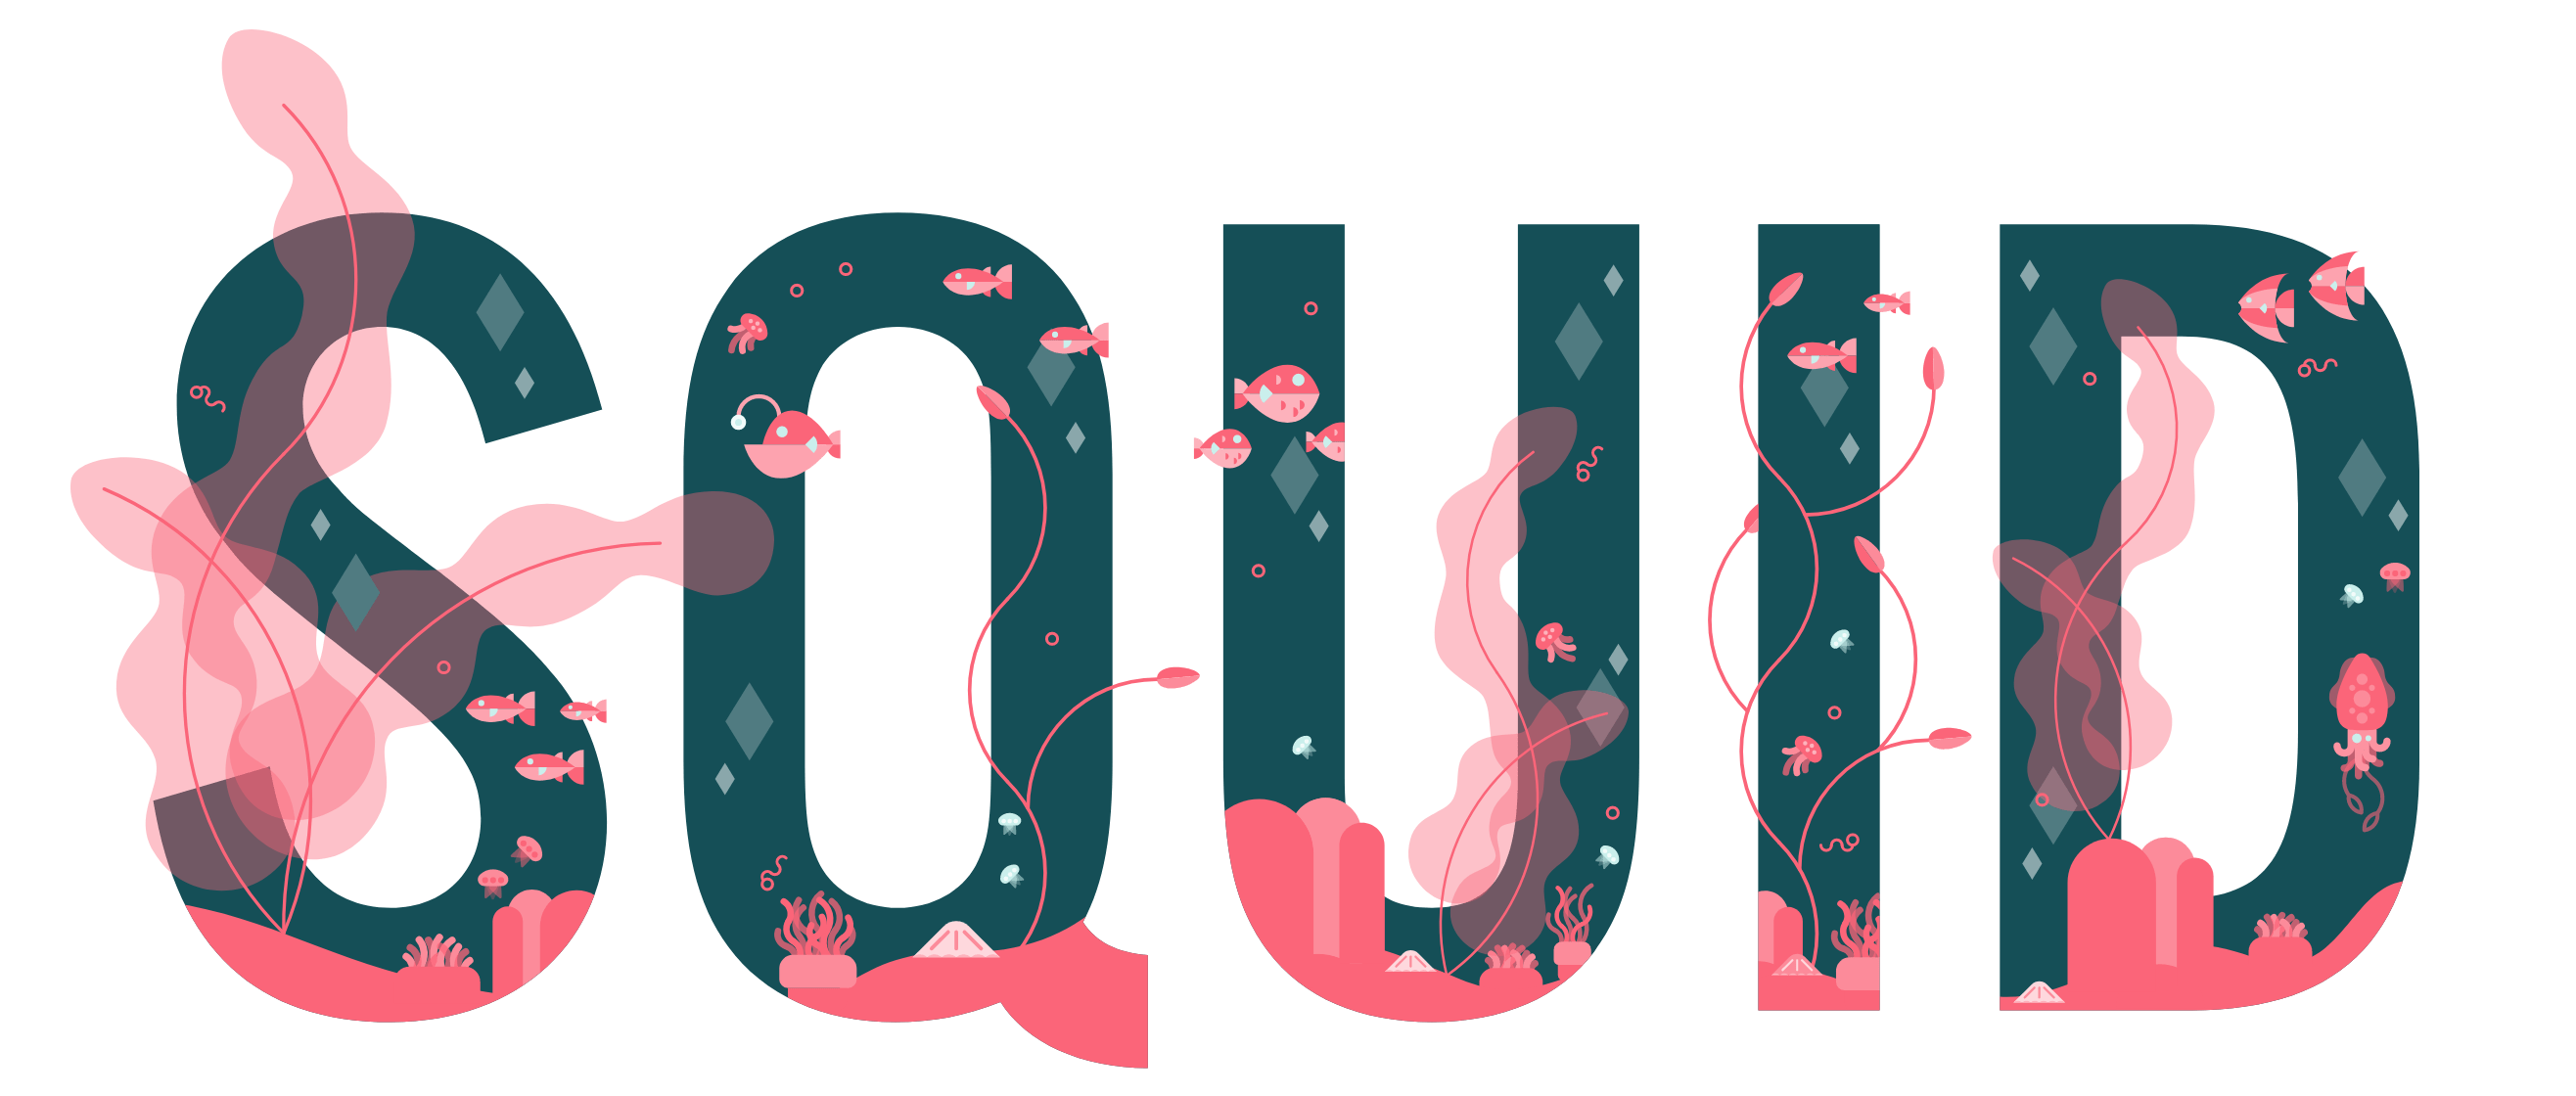 Squid's new logo filled with clean graphic illustrations of fish and water and plantlife weaving inside it and creeping out of the text in a few places.